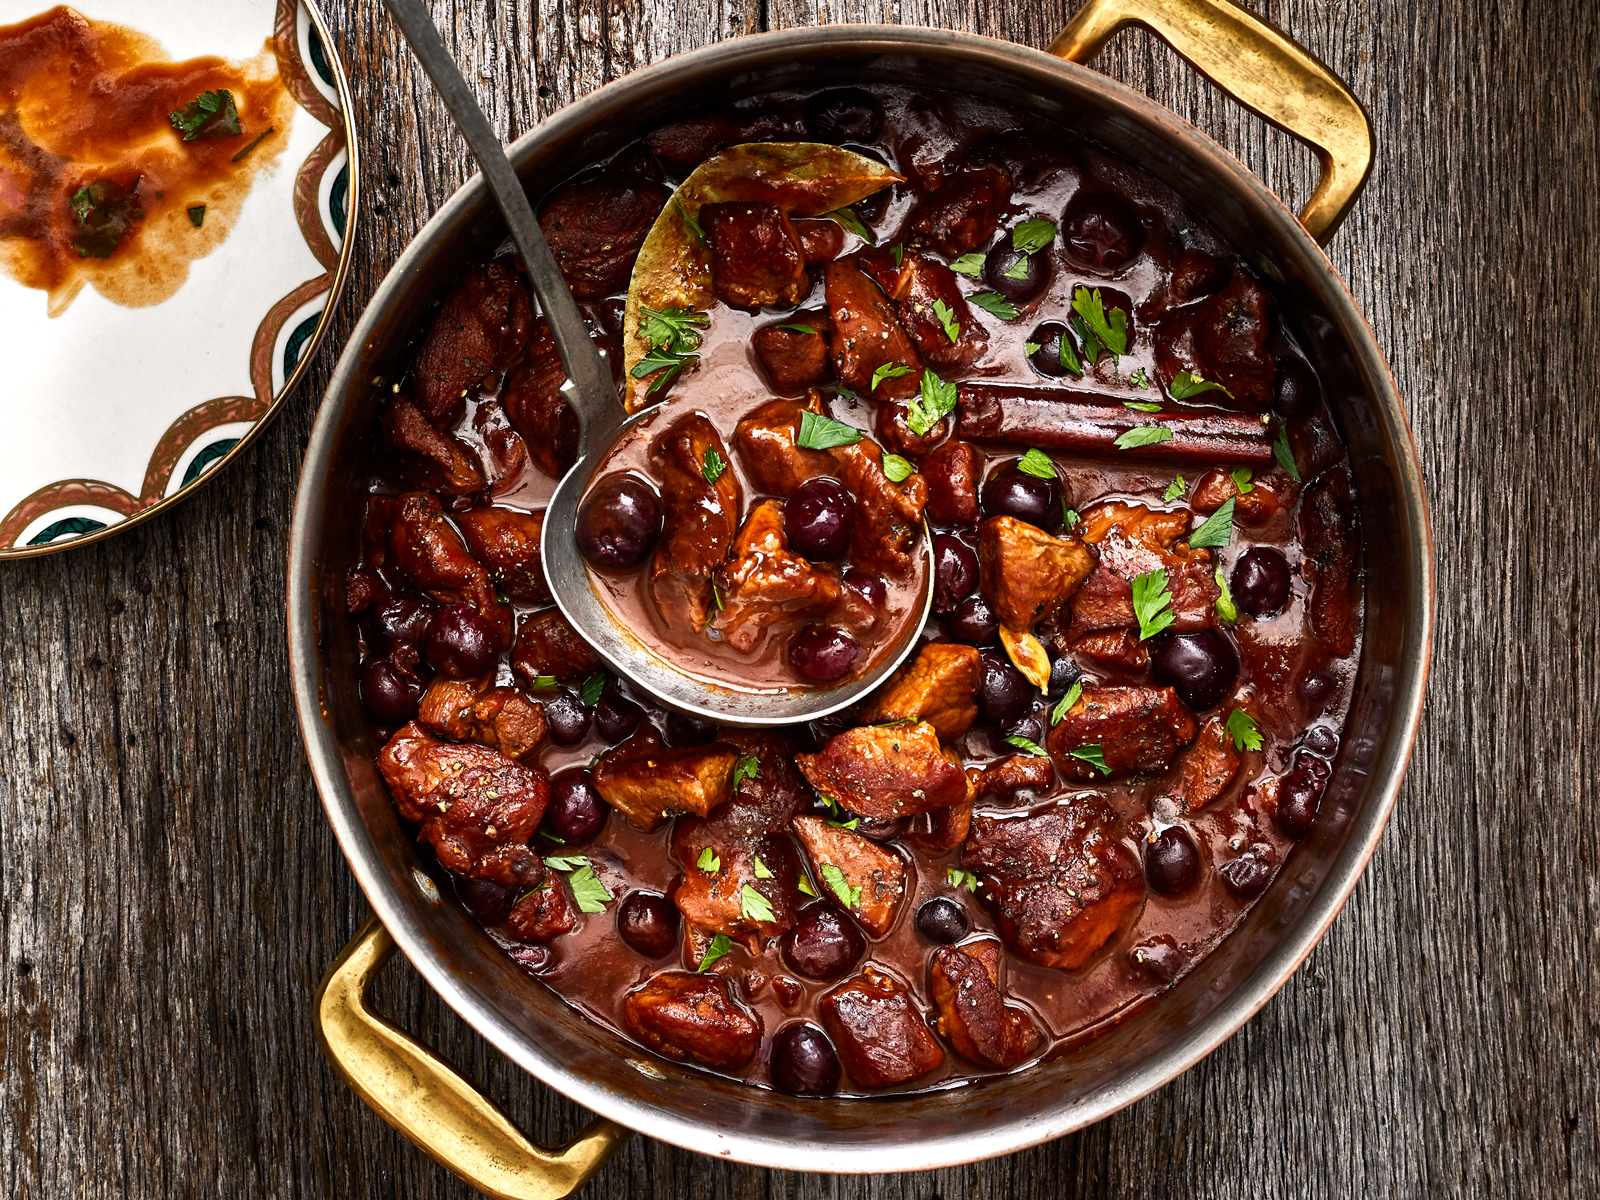 Oven-Braised Veal Stew with Black Pepper and Cherries